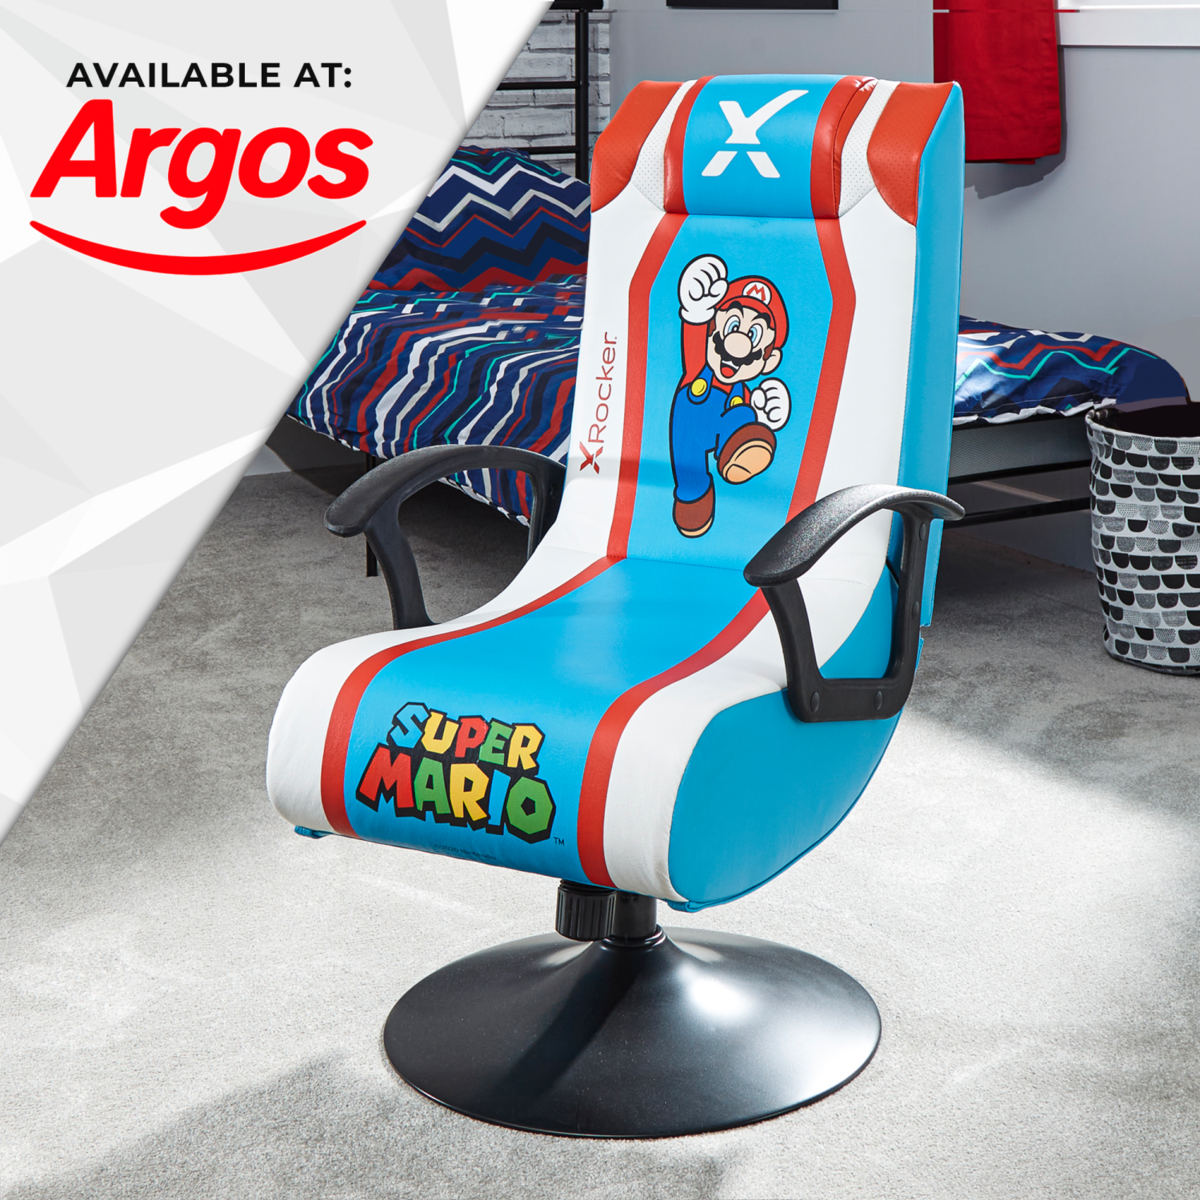 Nintendo Super Mario X Rocker Audio Pedestal Gaming Chair - Mario Edition in Light Blue available at Argos